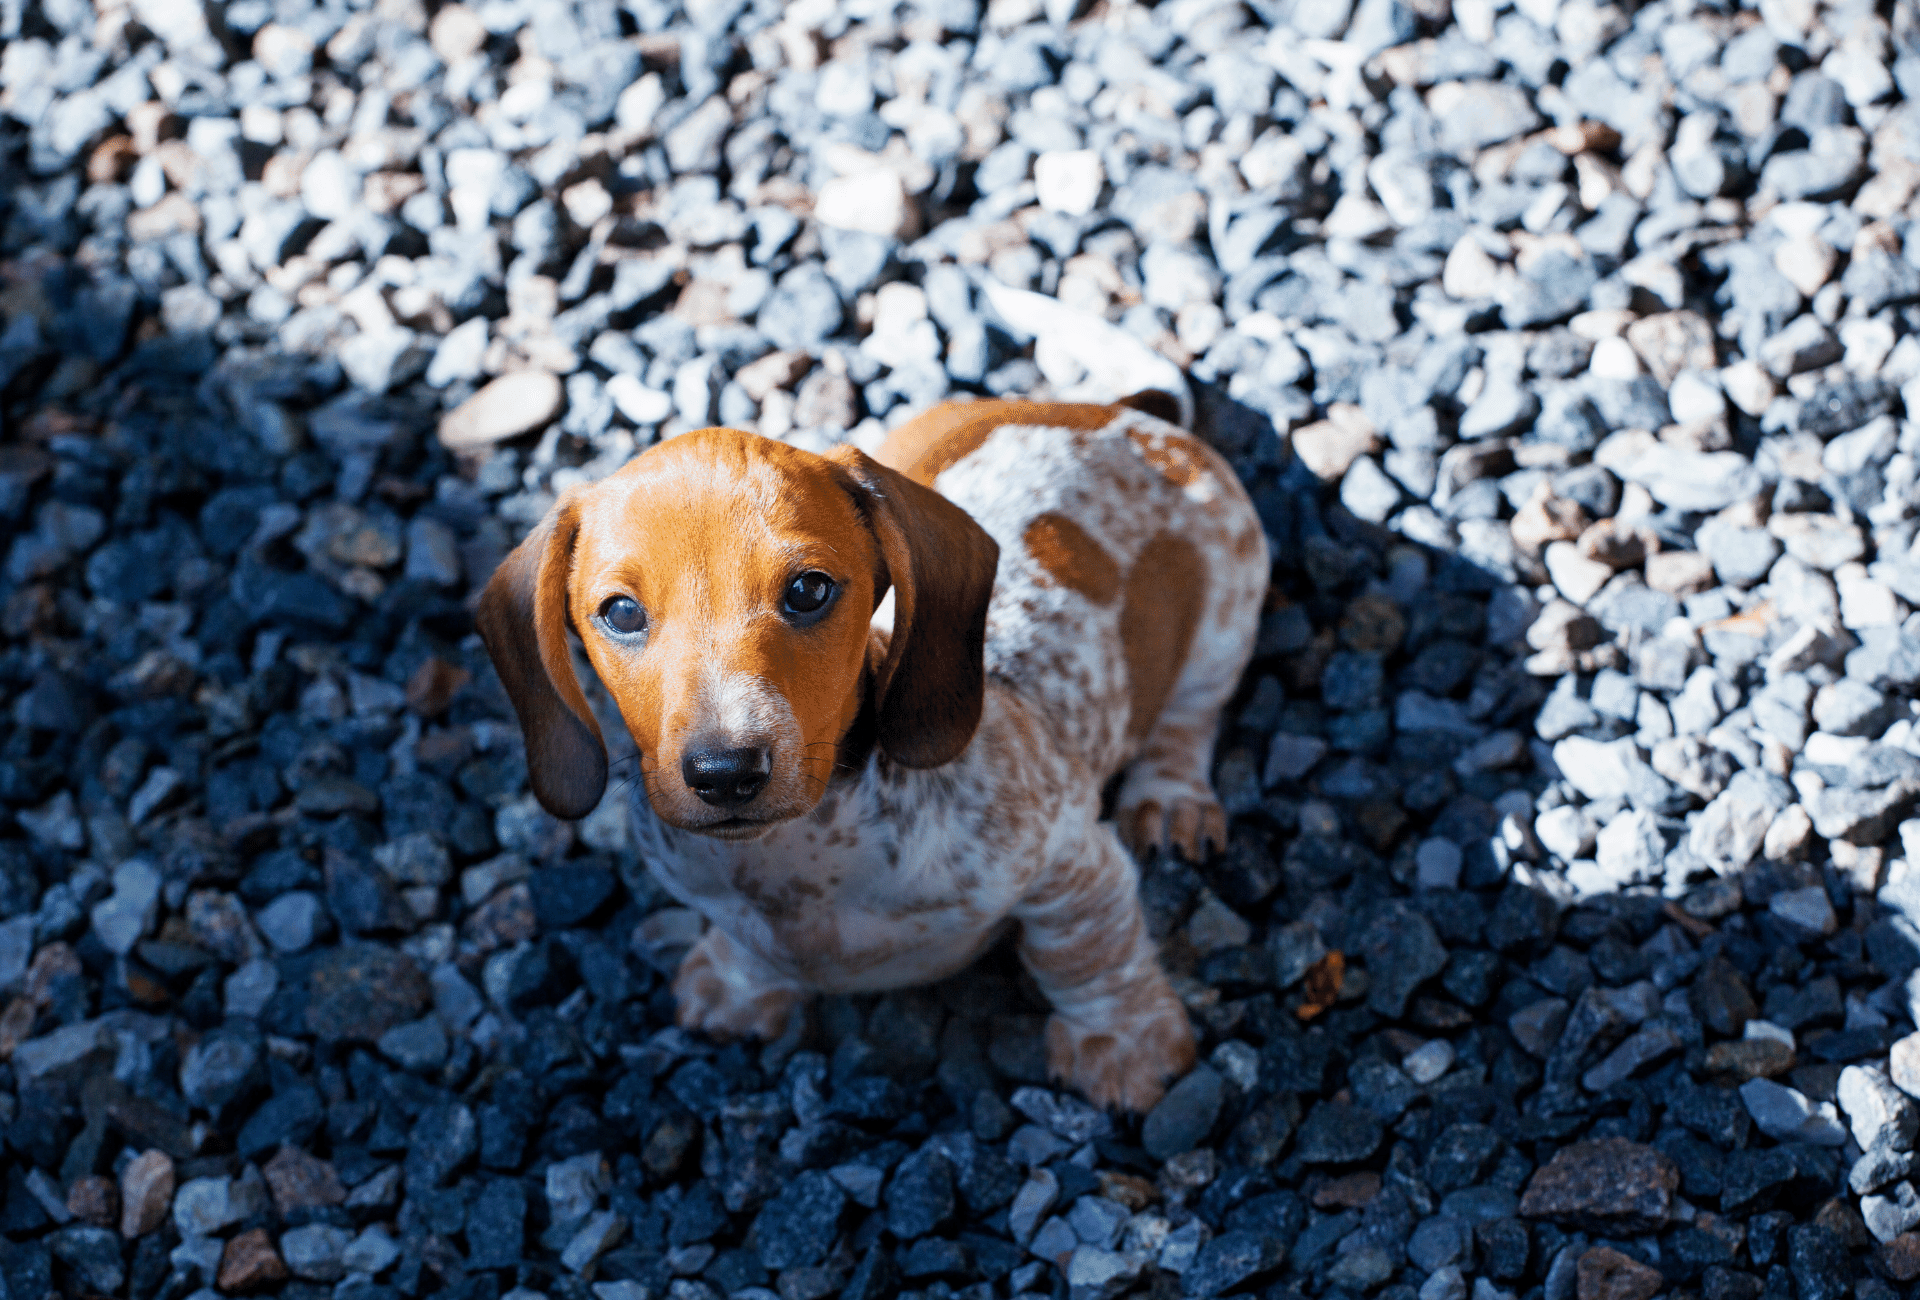 Puppy sitting on top of stones.